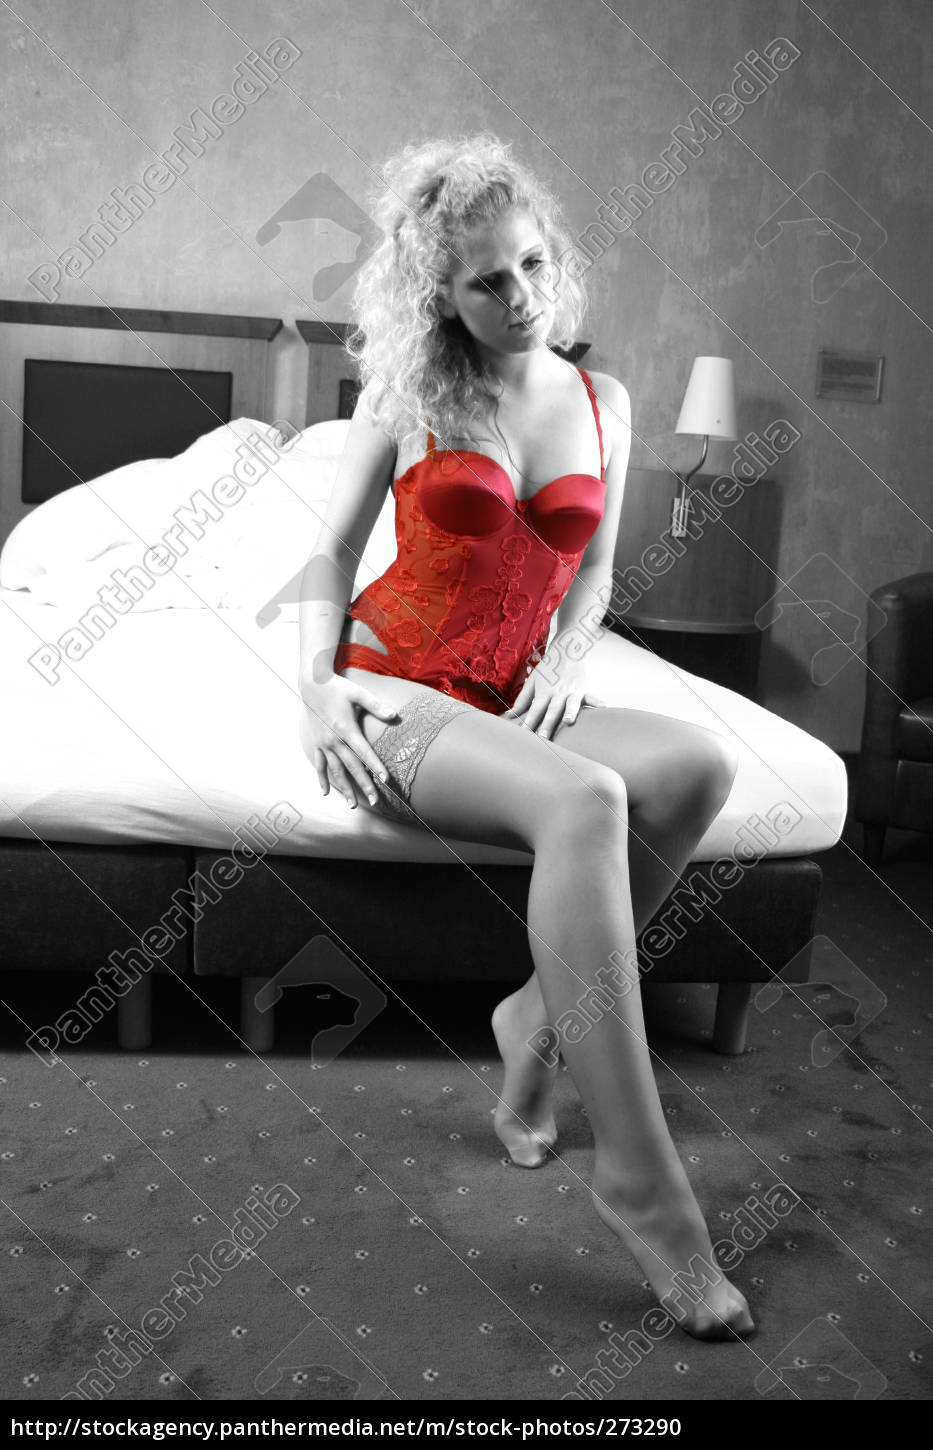 the, red, seduction - 273290